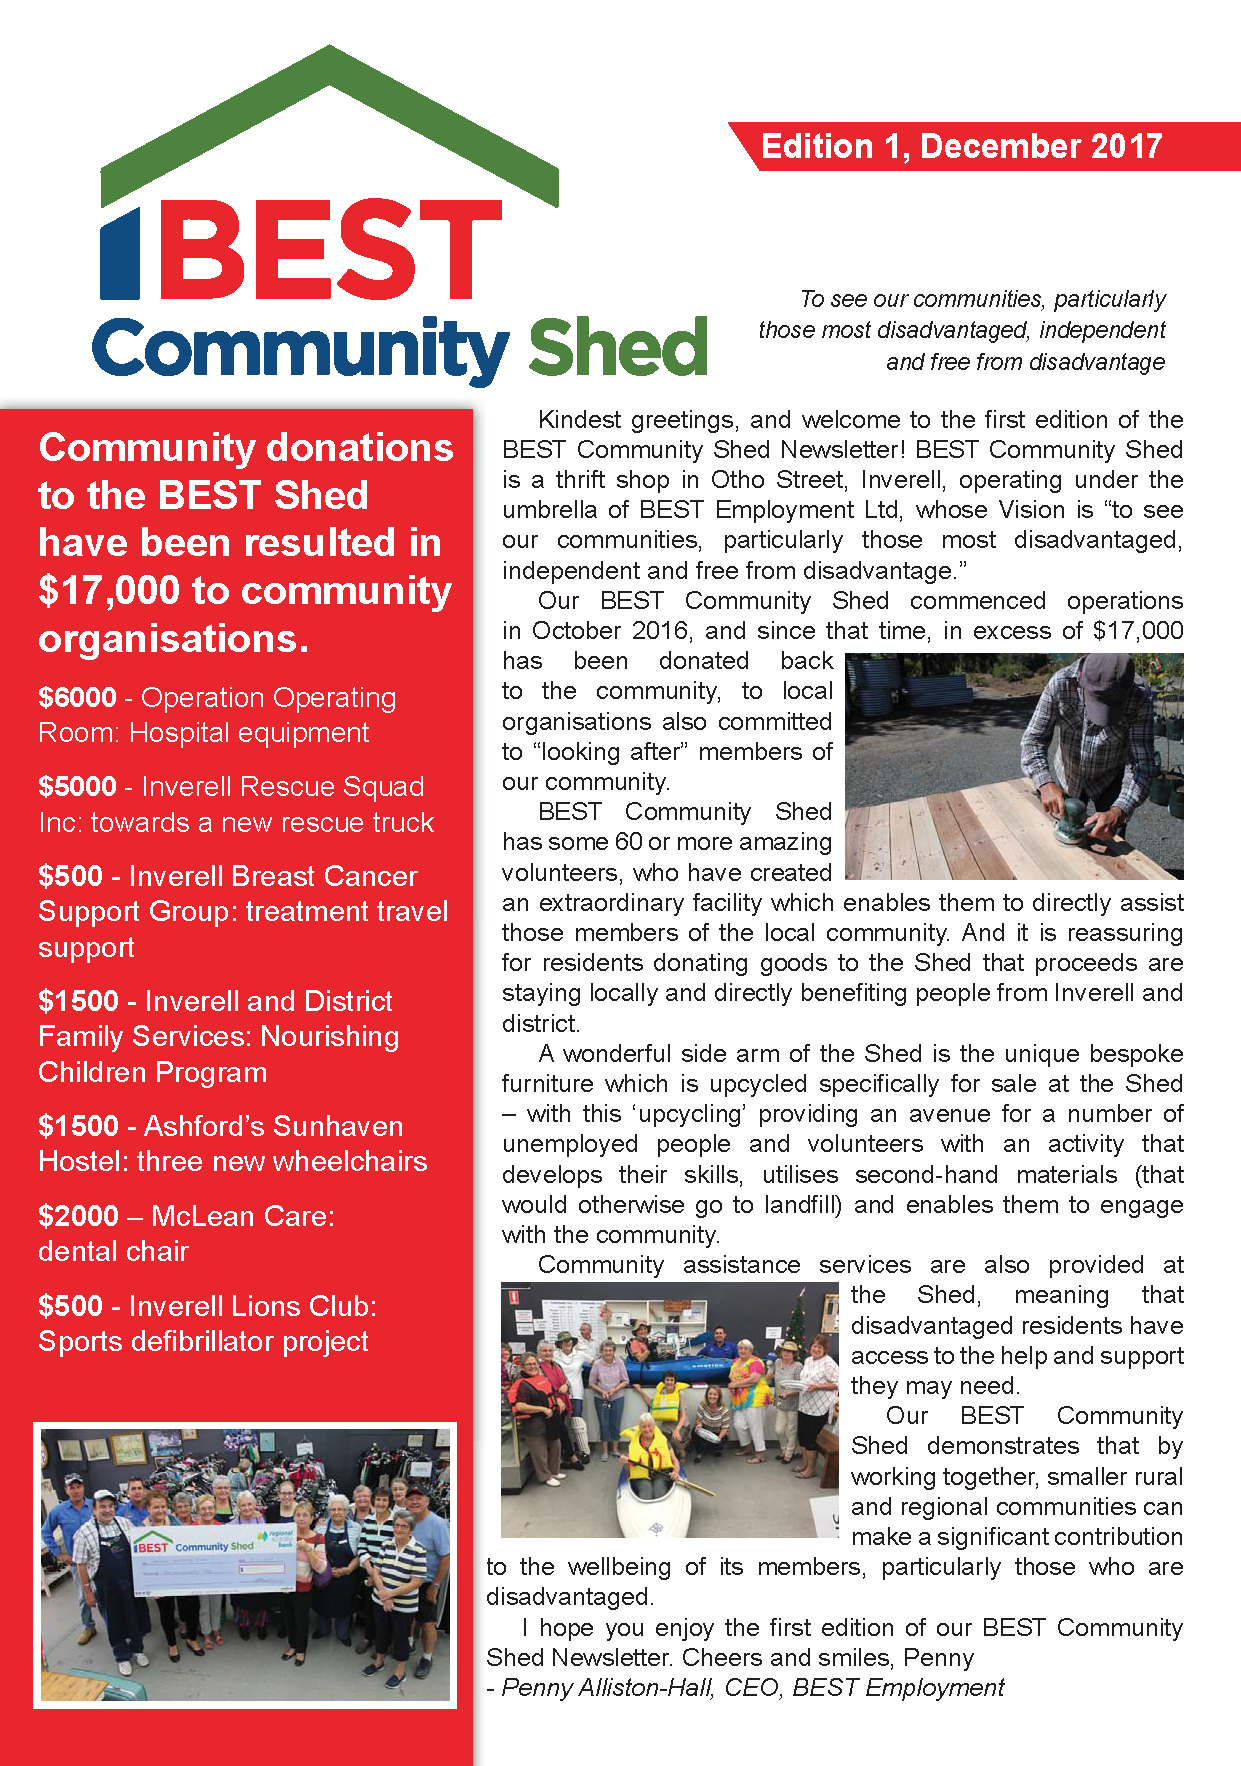 BCS Newsletter Edition 1, December 2017